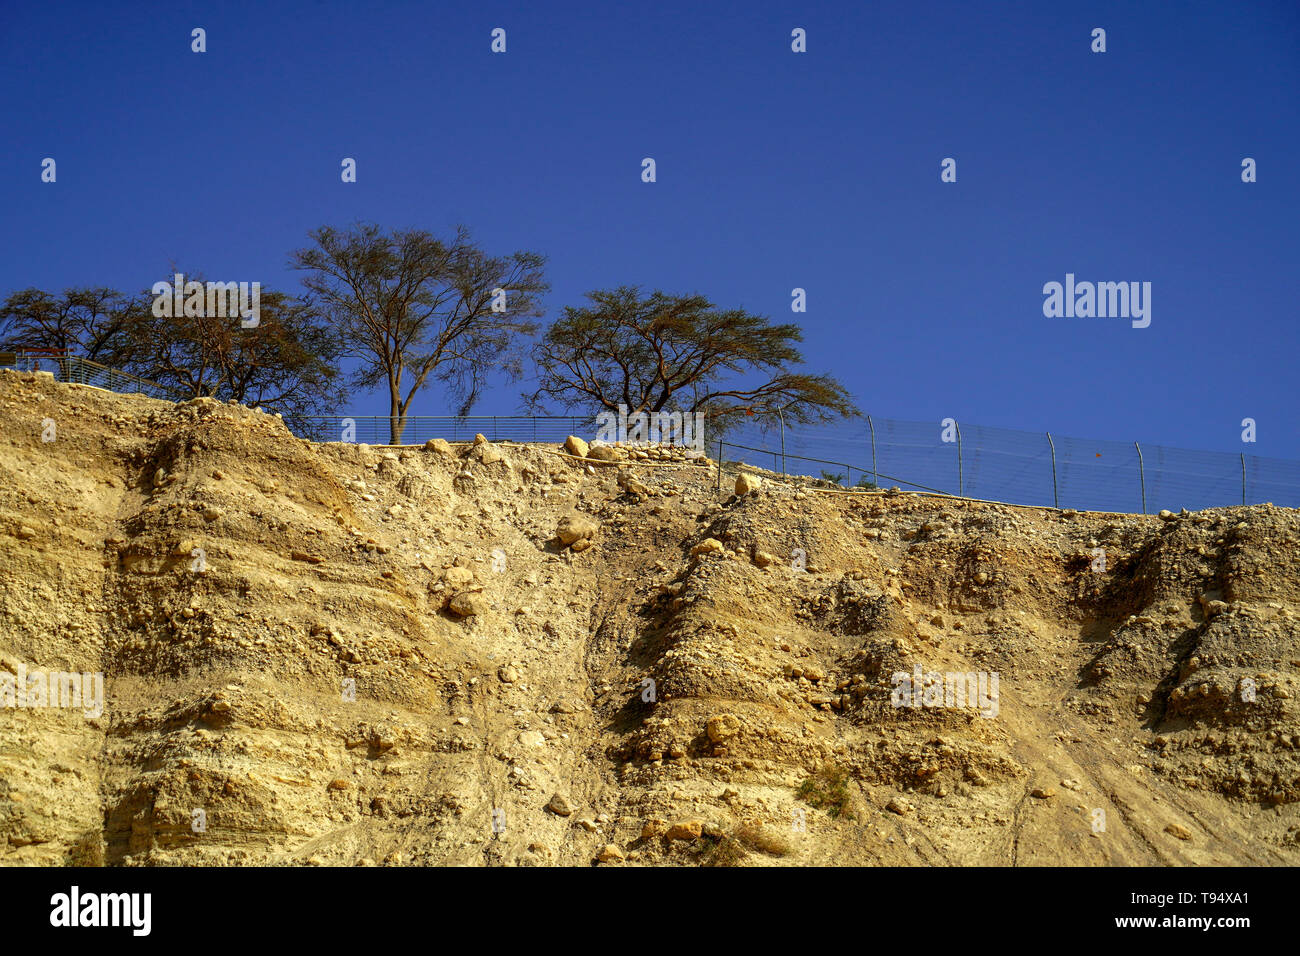 Israel, Dead Sea, Ein Gedi national park the eroded marl stone cliff overlooking the stream Stock Photo